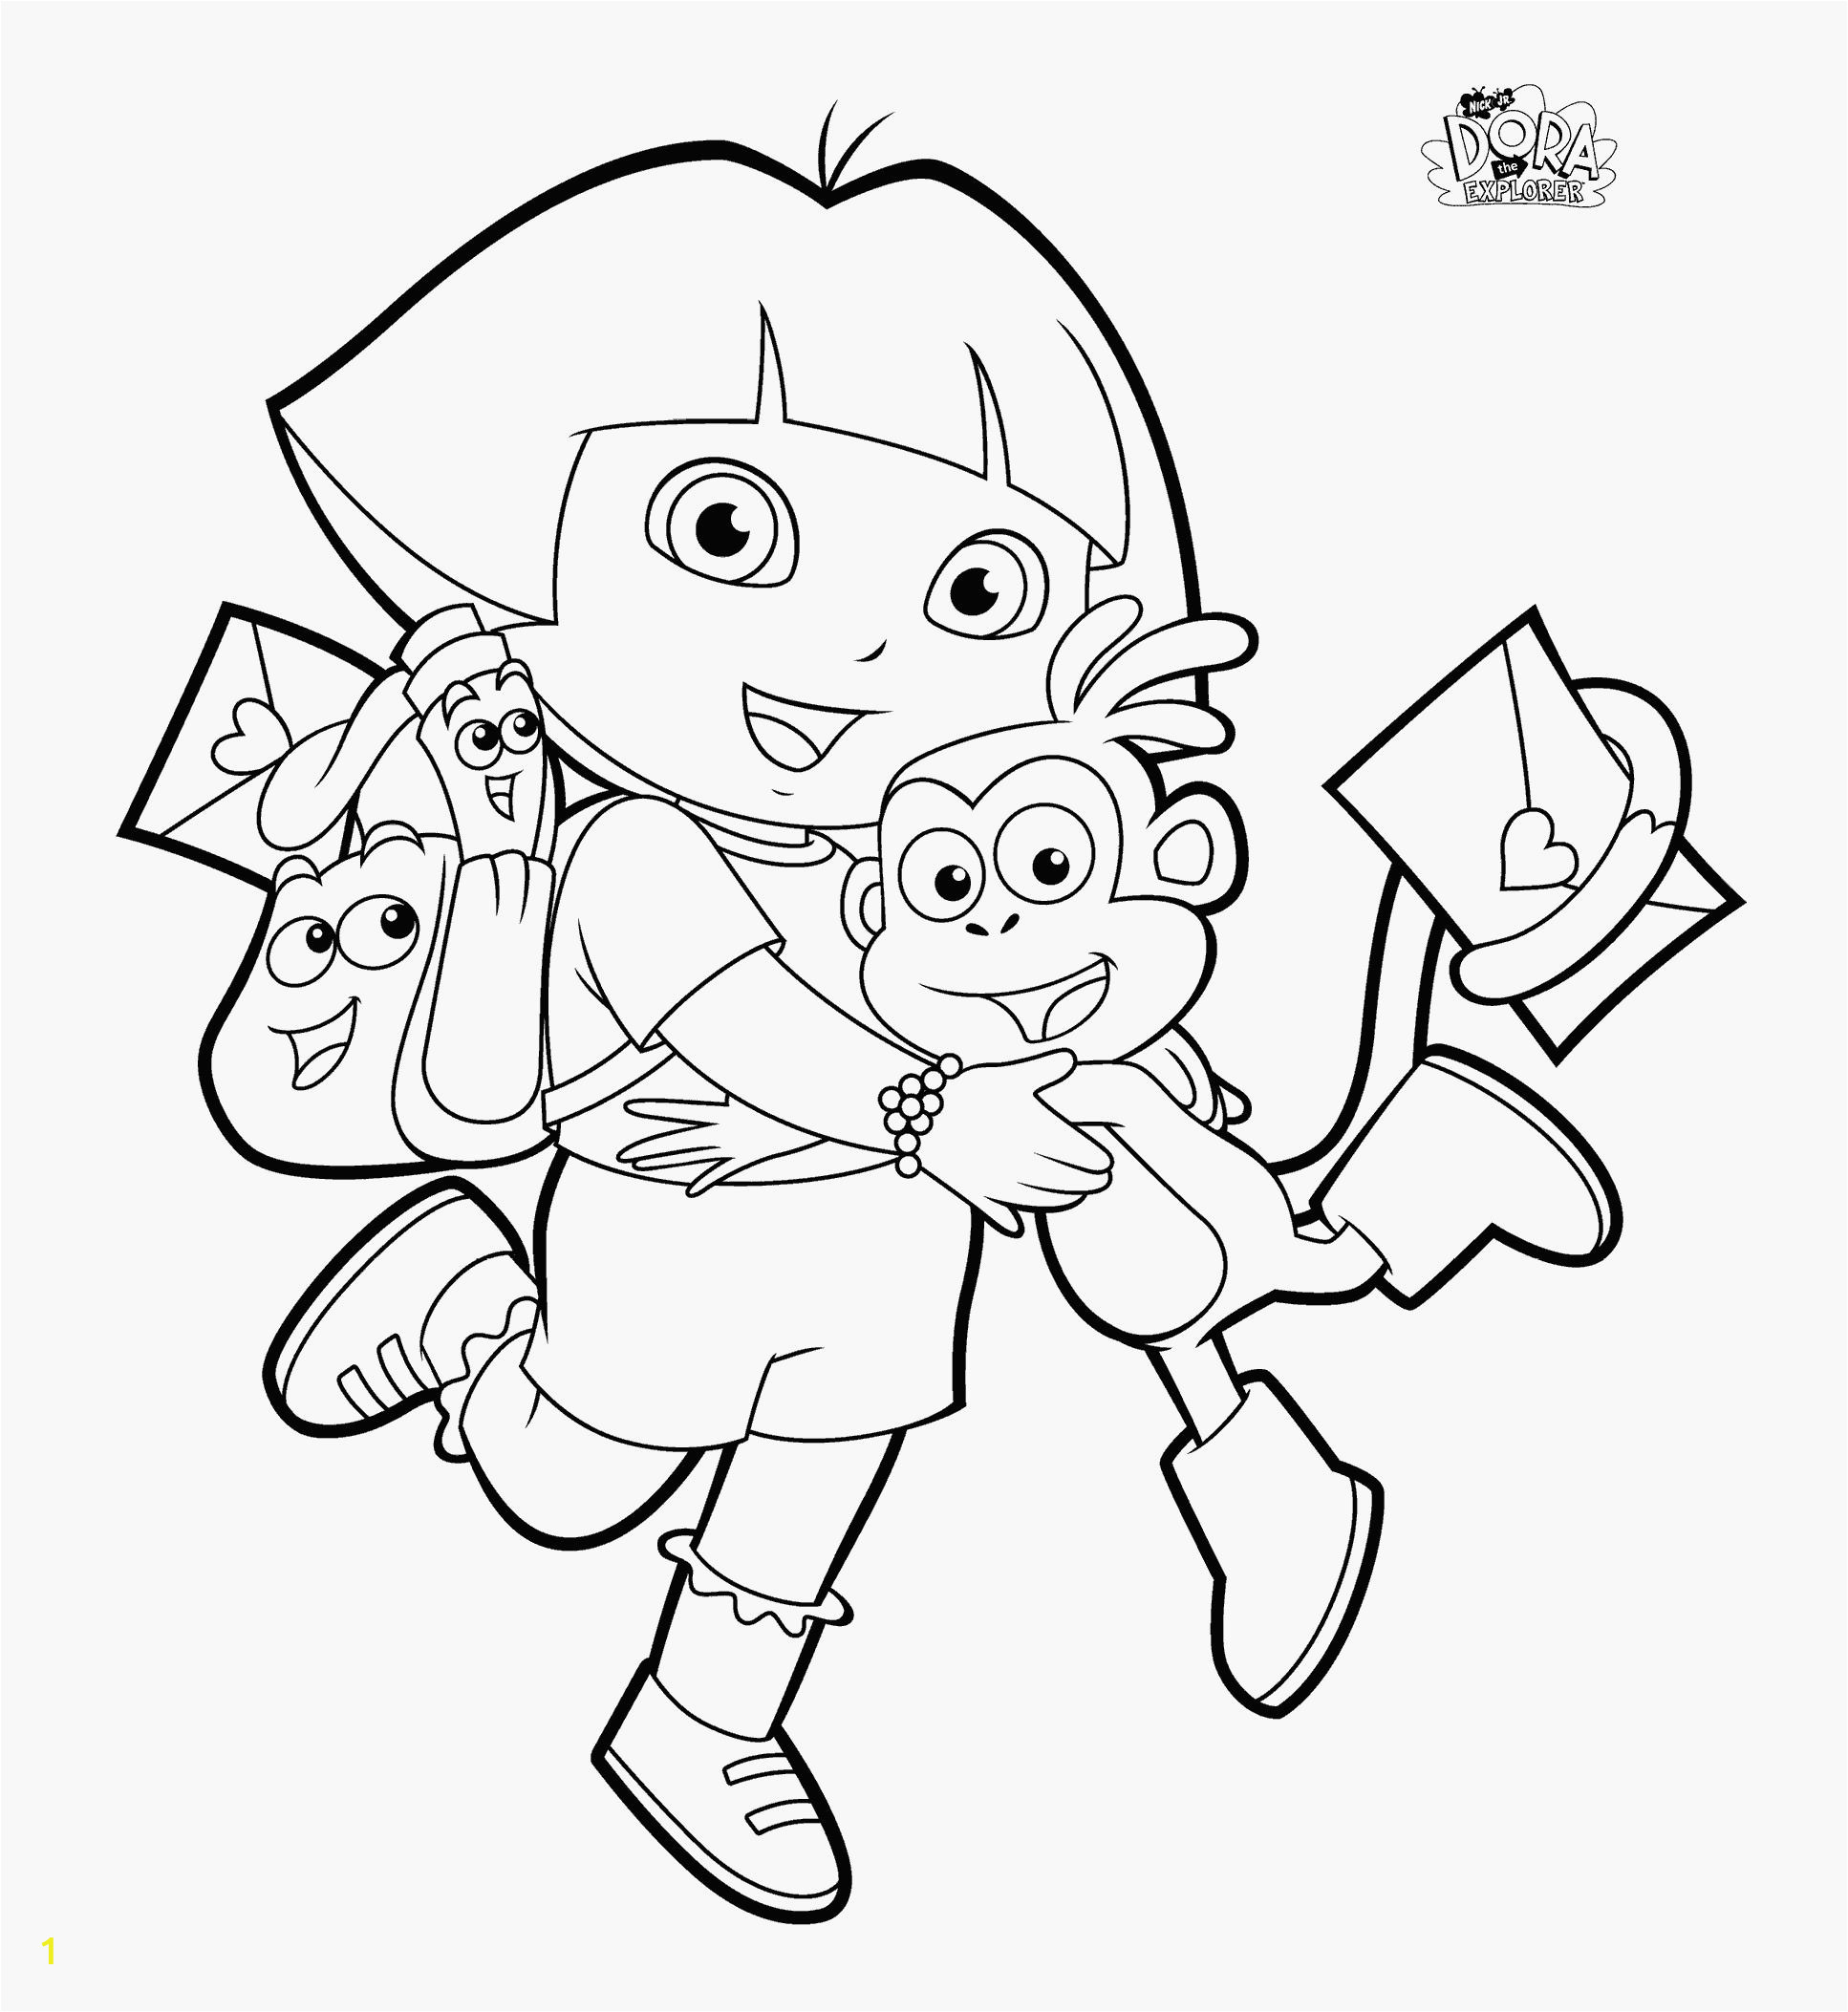 Diego Halloween Coloring Pages Backpack Coloring Page Coloring Pages Dora Coloring Pages